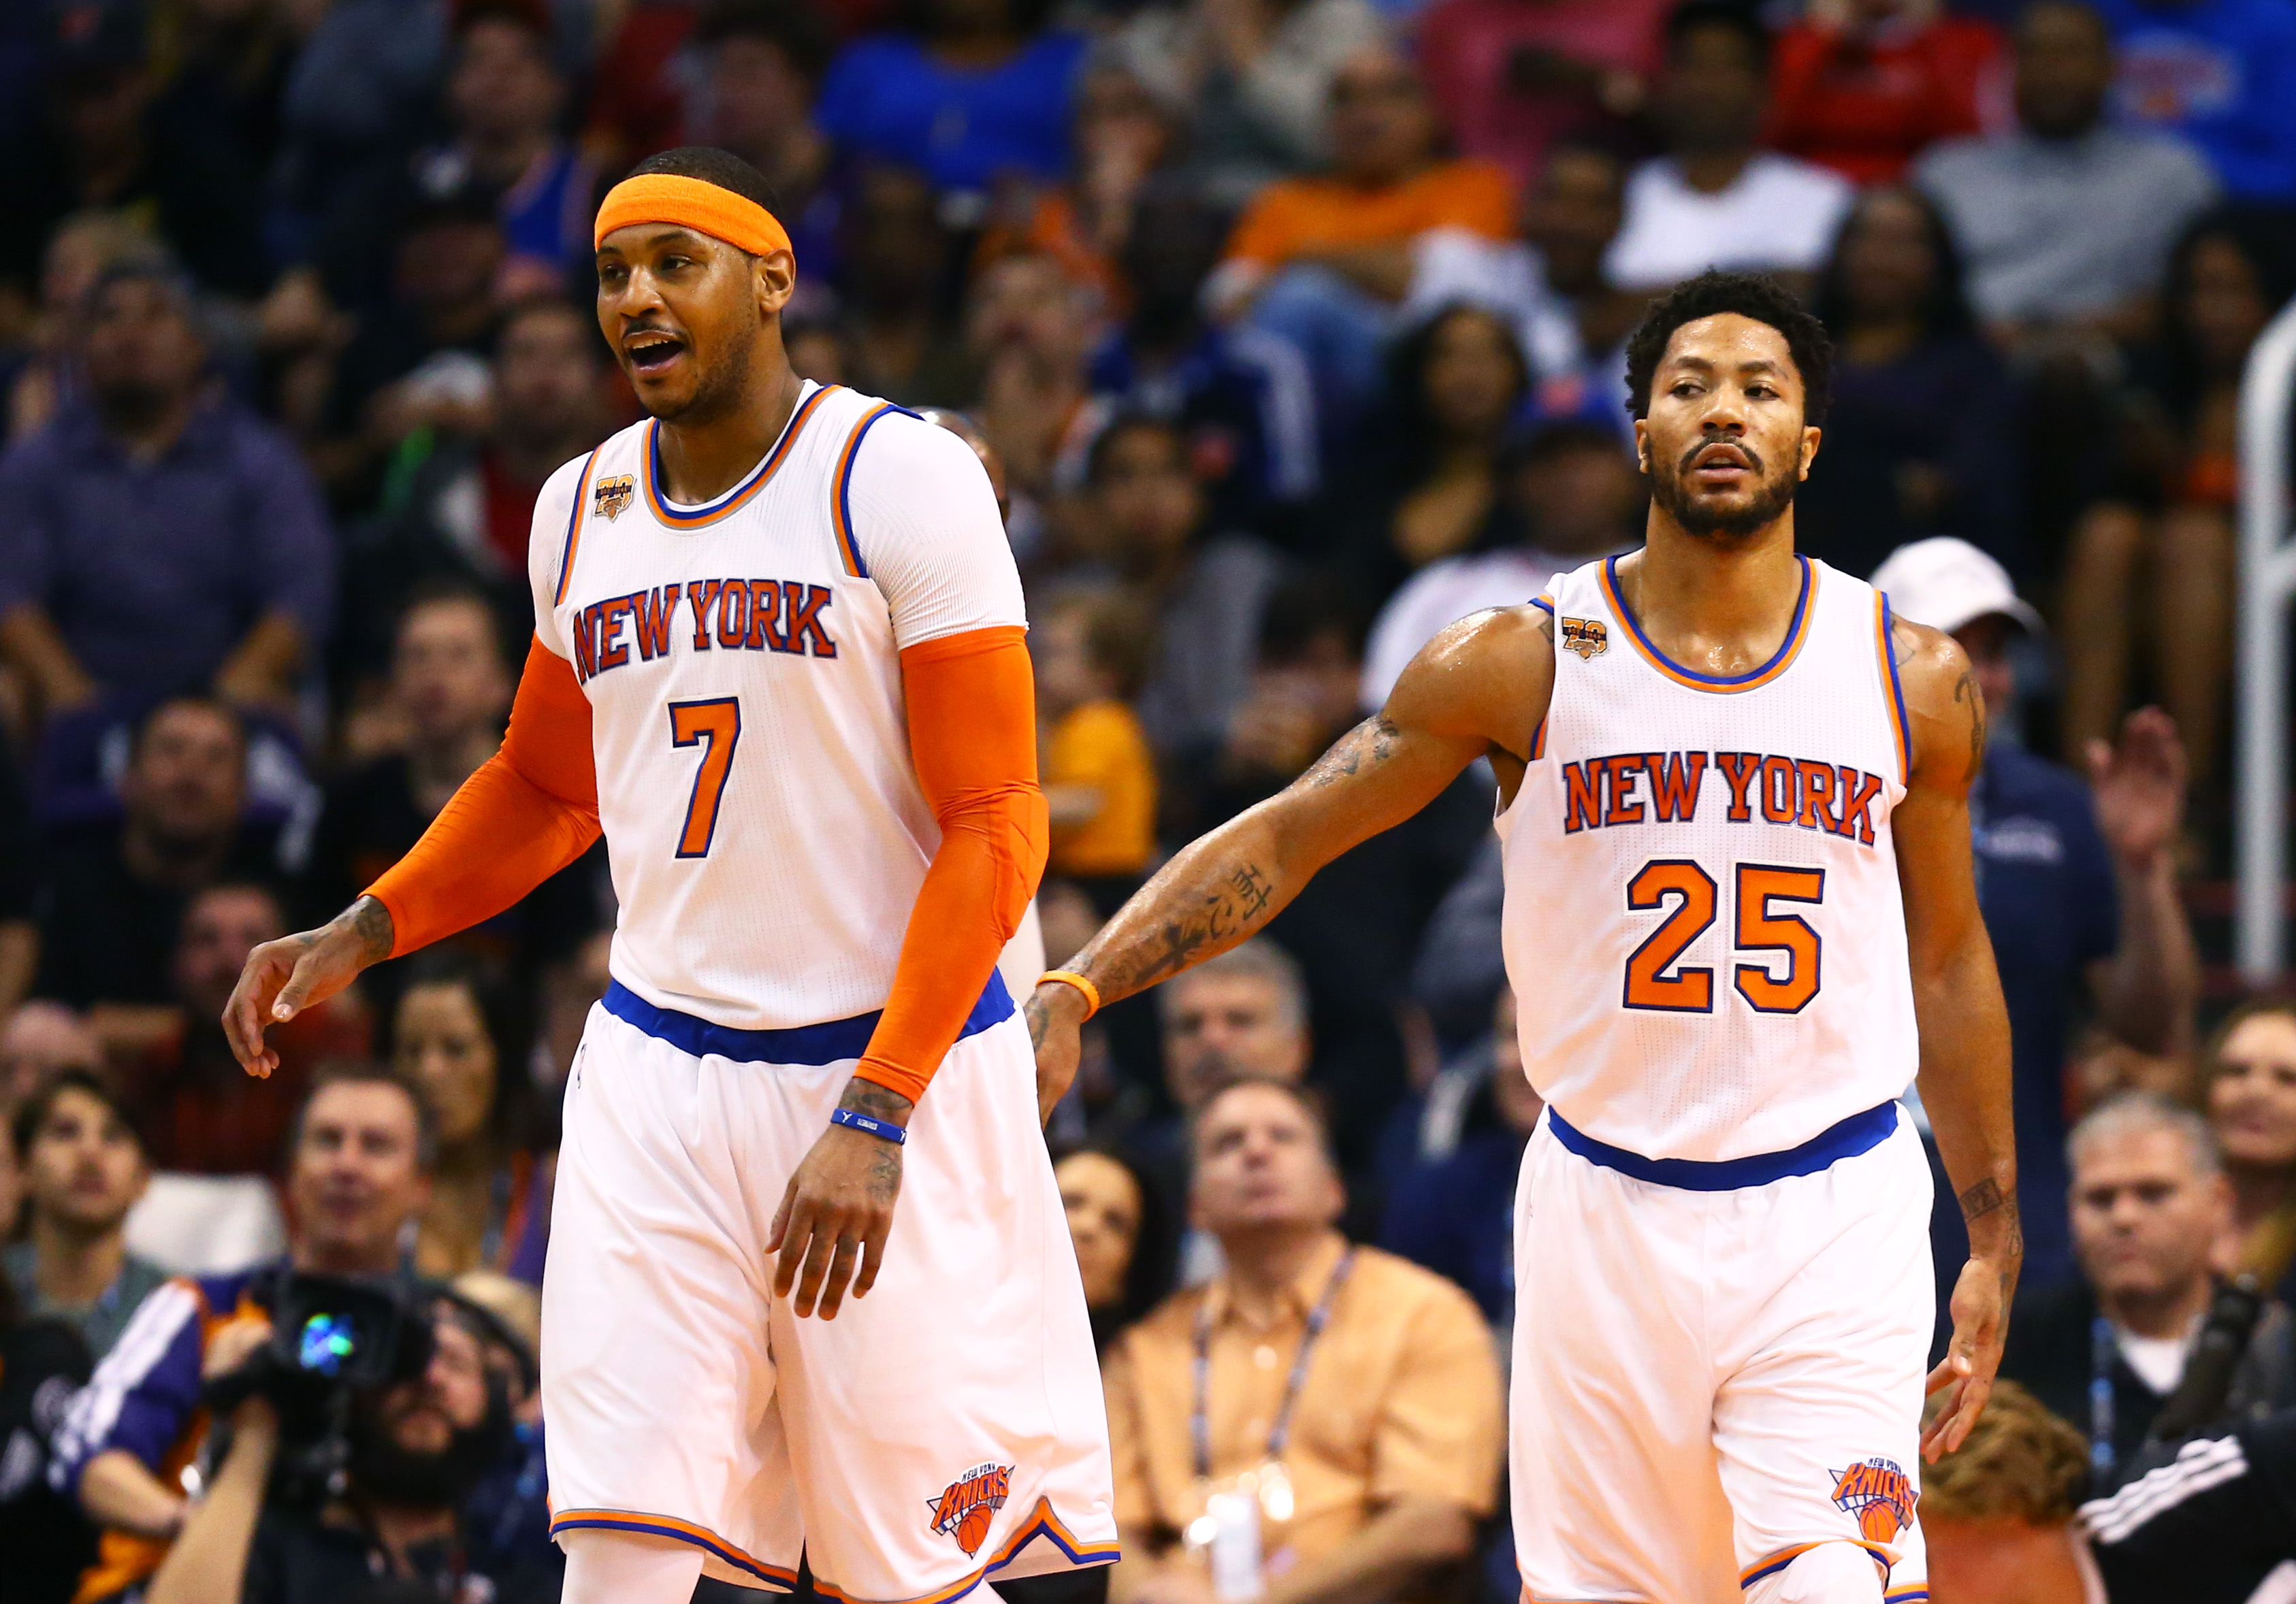 9770532-nba-new-york-knicks-at-phoenix-suns